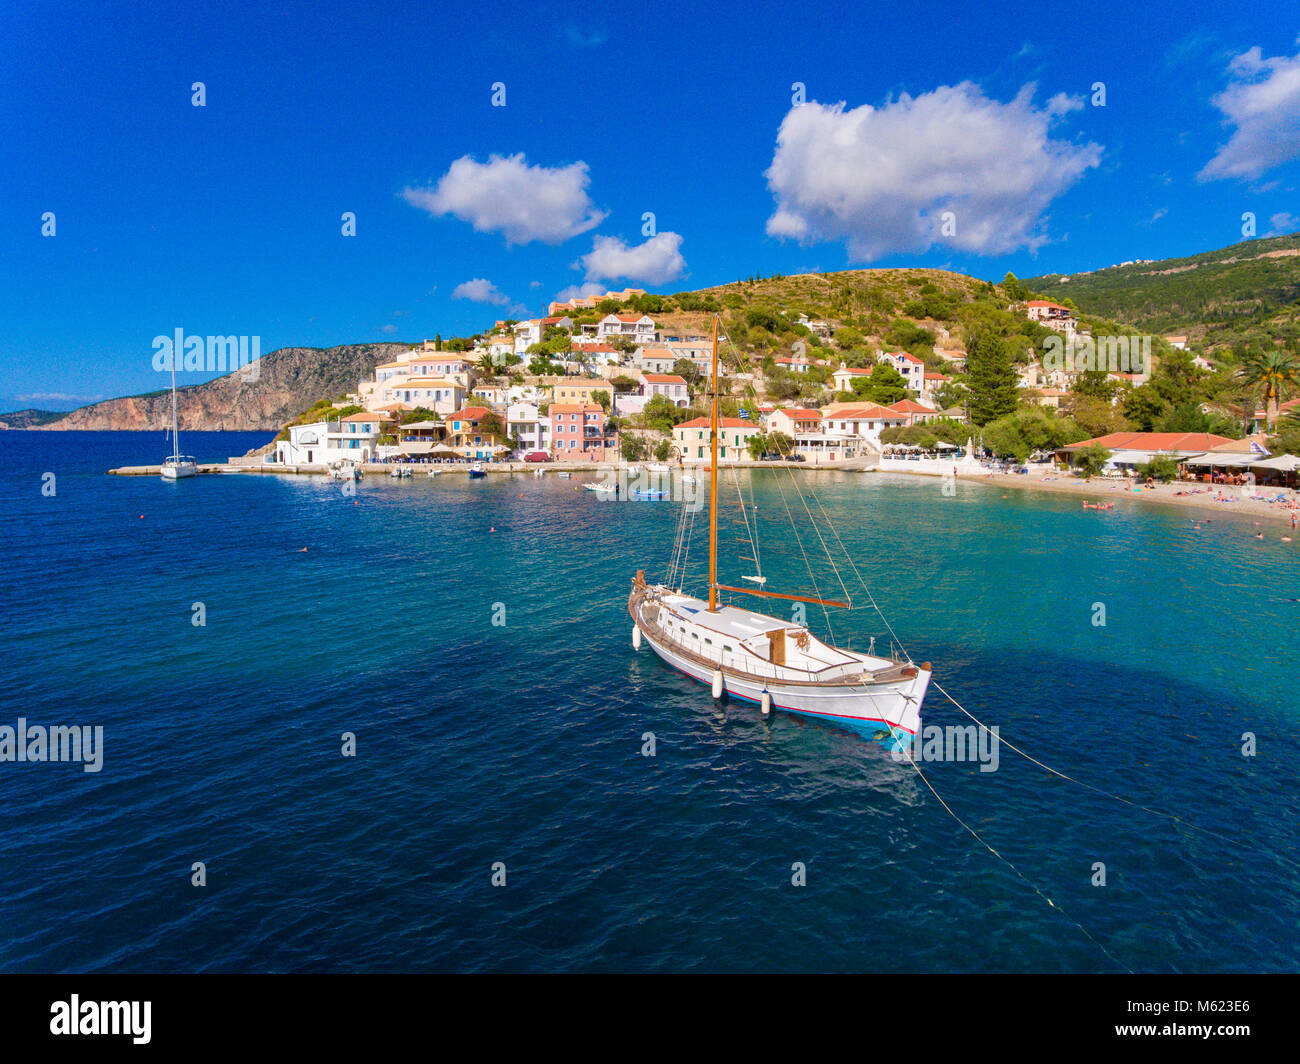 Assos village and port in Kefalonia Greece - Stock Image